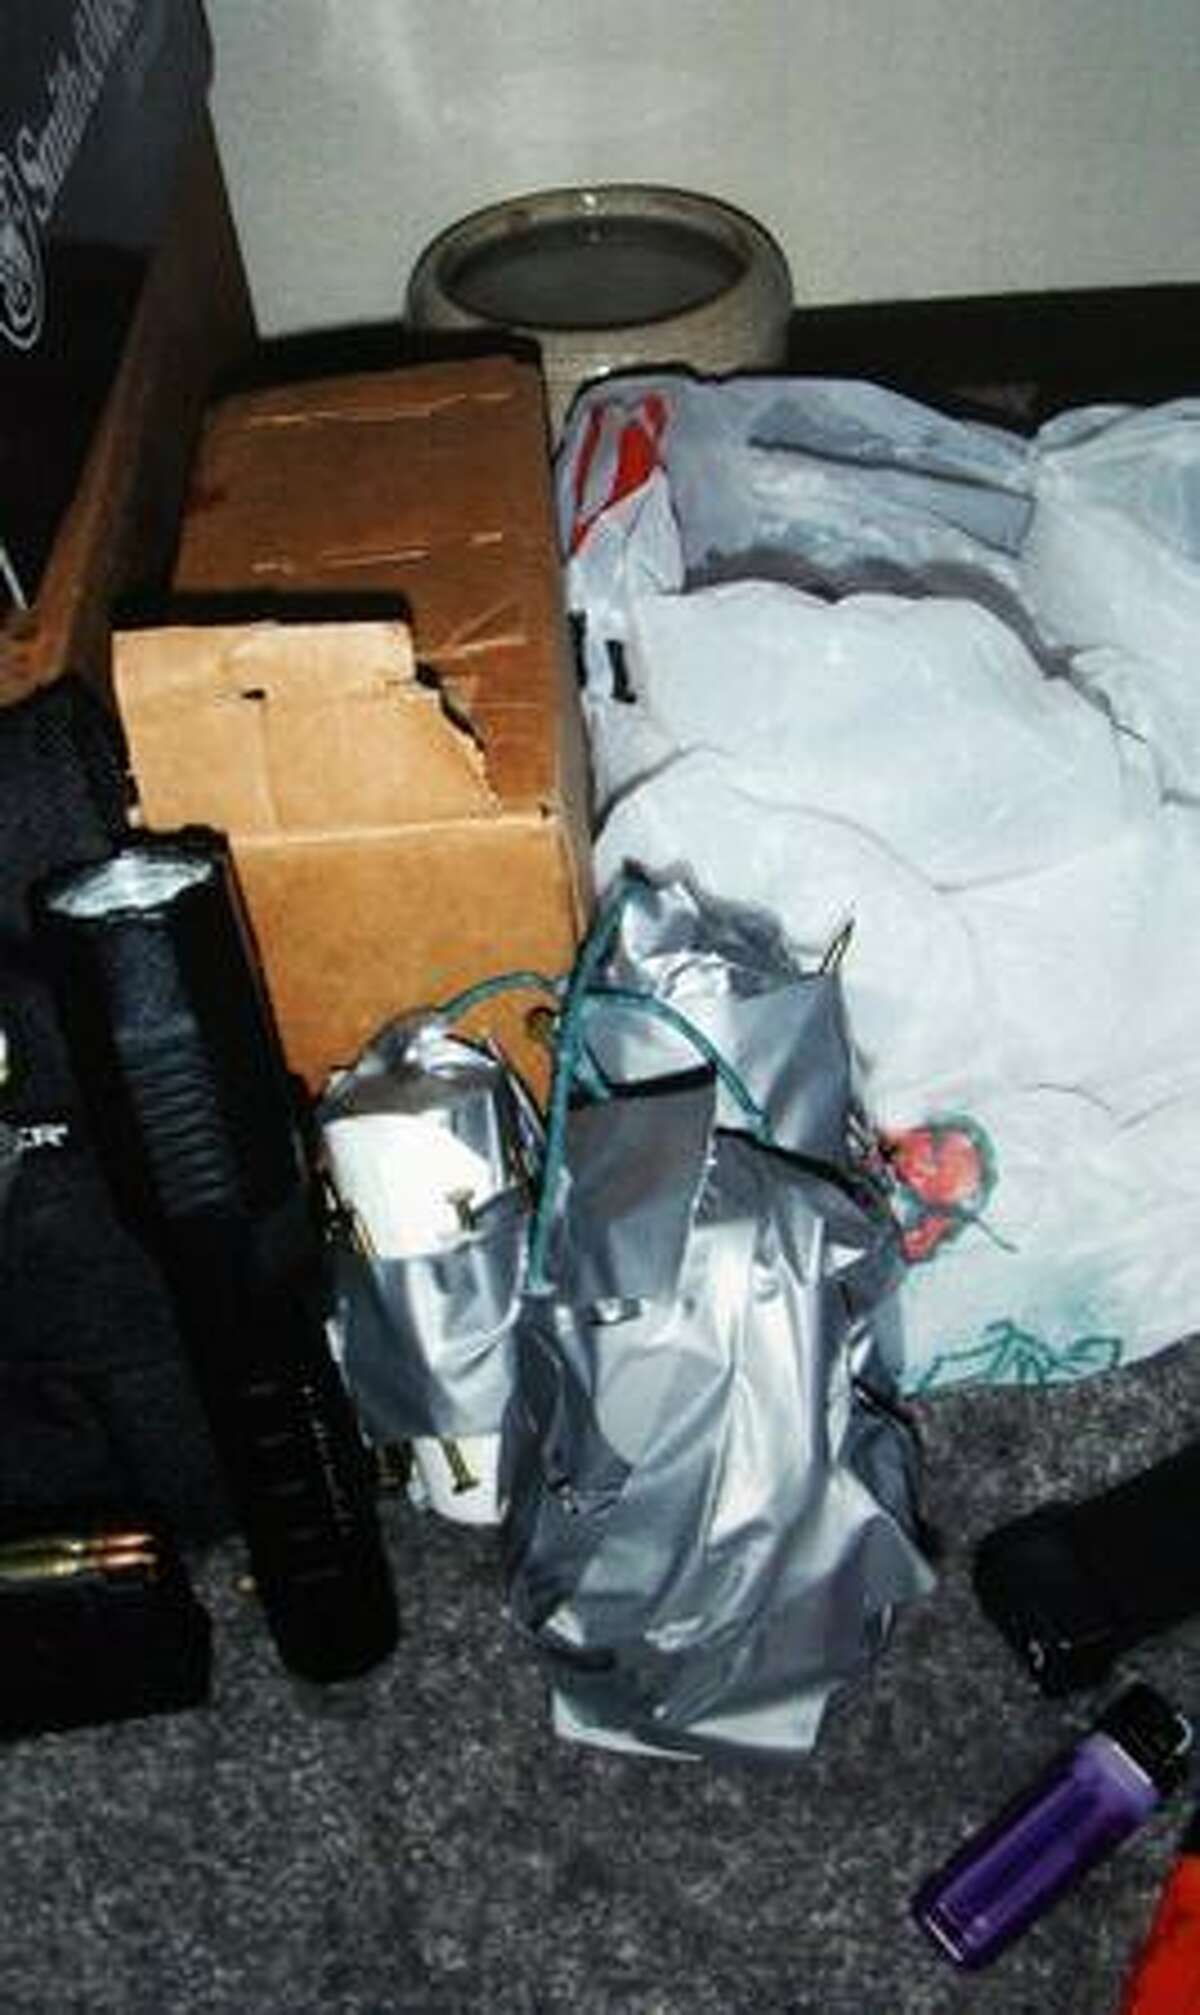 A police photo of evidence investigators said was seized at Christopher J. Monfort's Tukwila apartment. Police said DNA evidence linked him to the Oct. 22 arson of four police vehicles and the homicide of Officer Tim Brenton Oct. 31. (Seattle Police Department Photo)